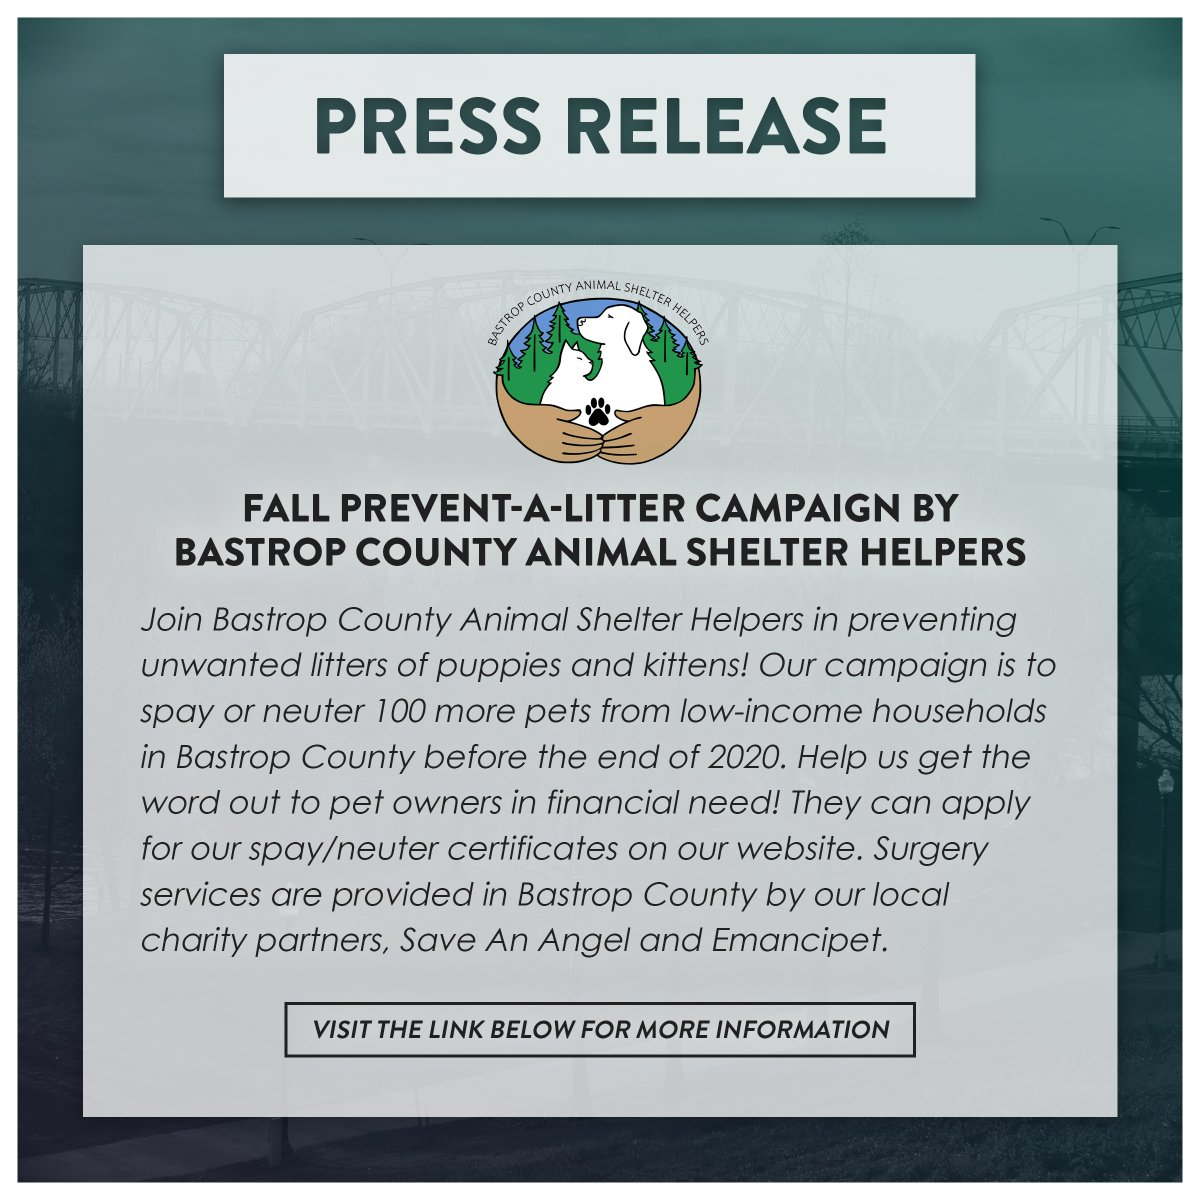 Press Release from the Bastrop County Animal Shelter Helpers! Visit the link below for more information!